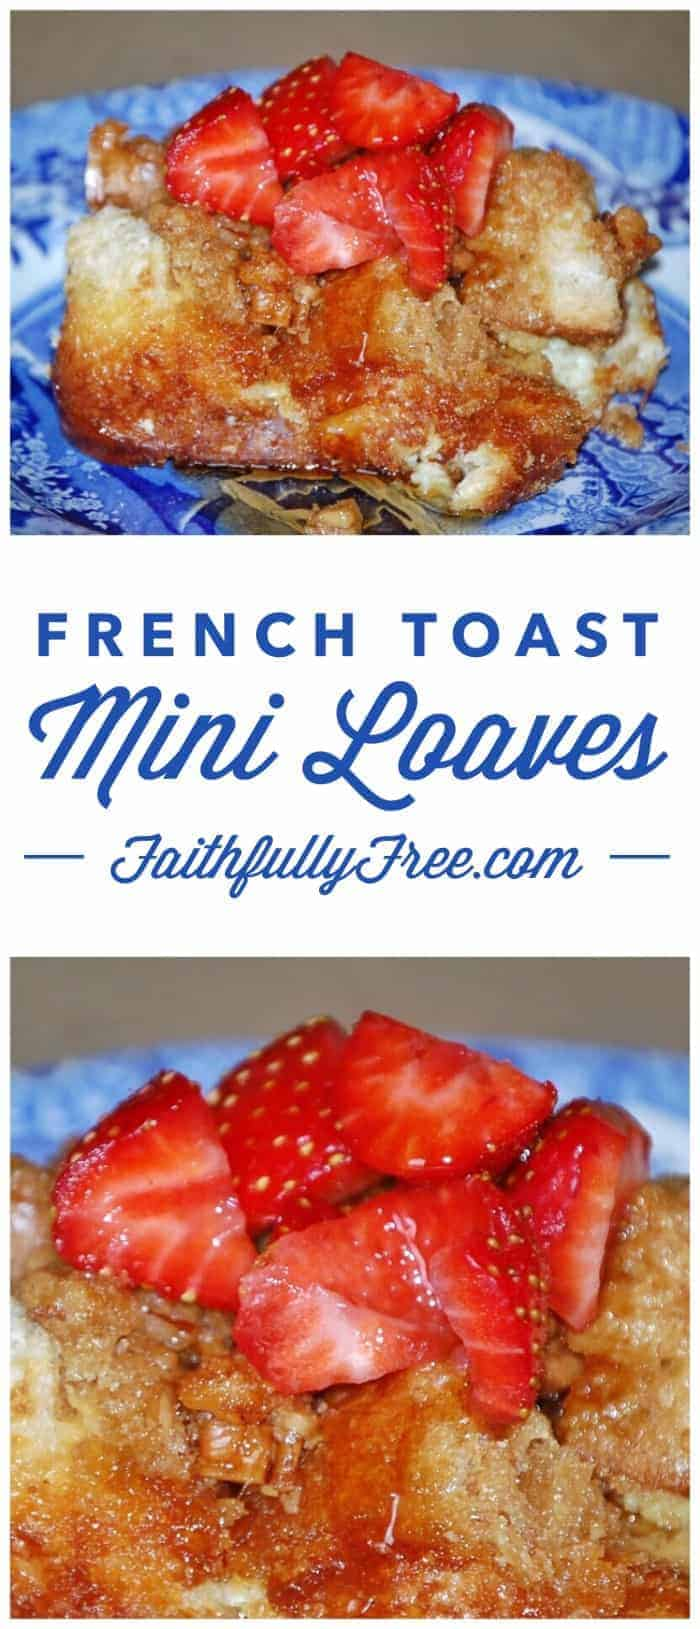 French Toast Mini Loaves Recipe